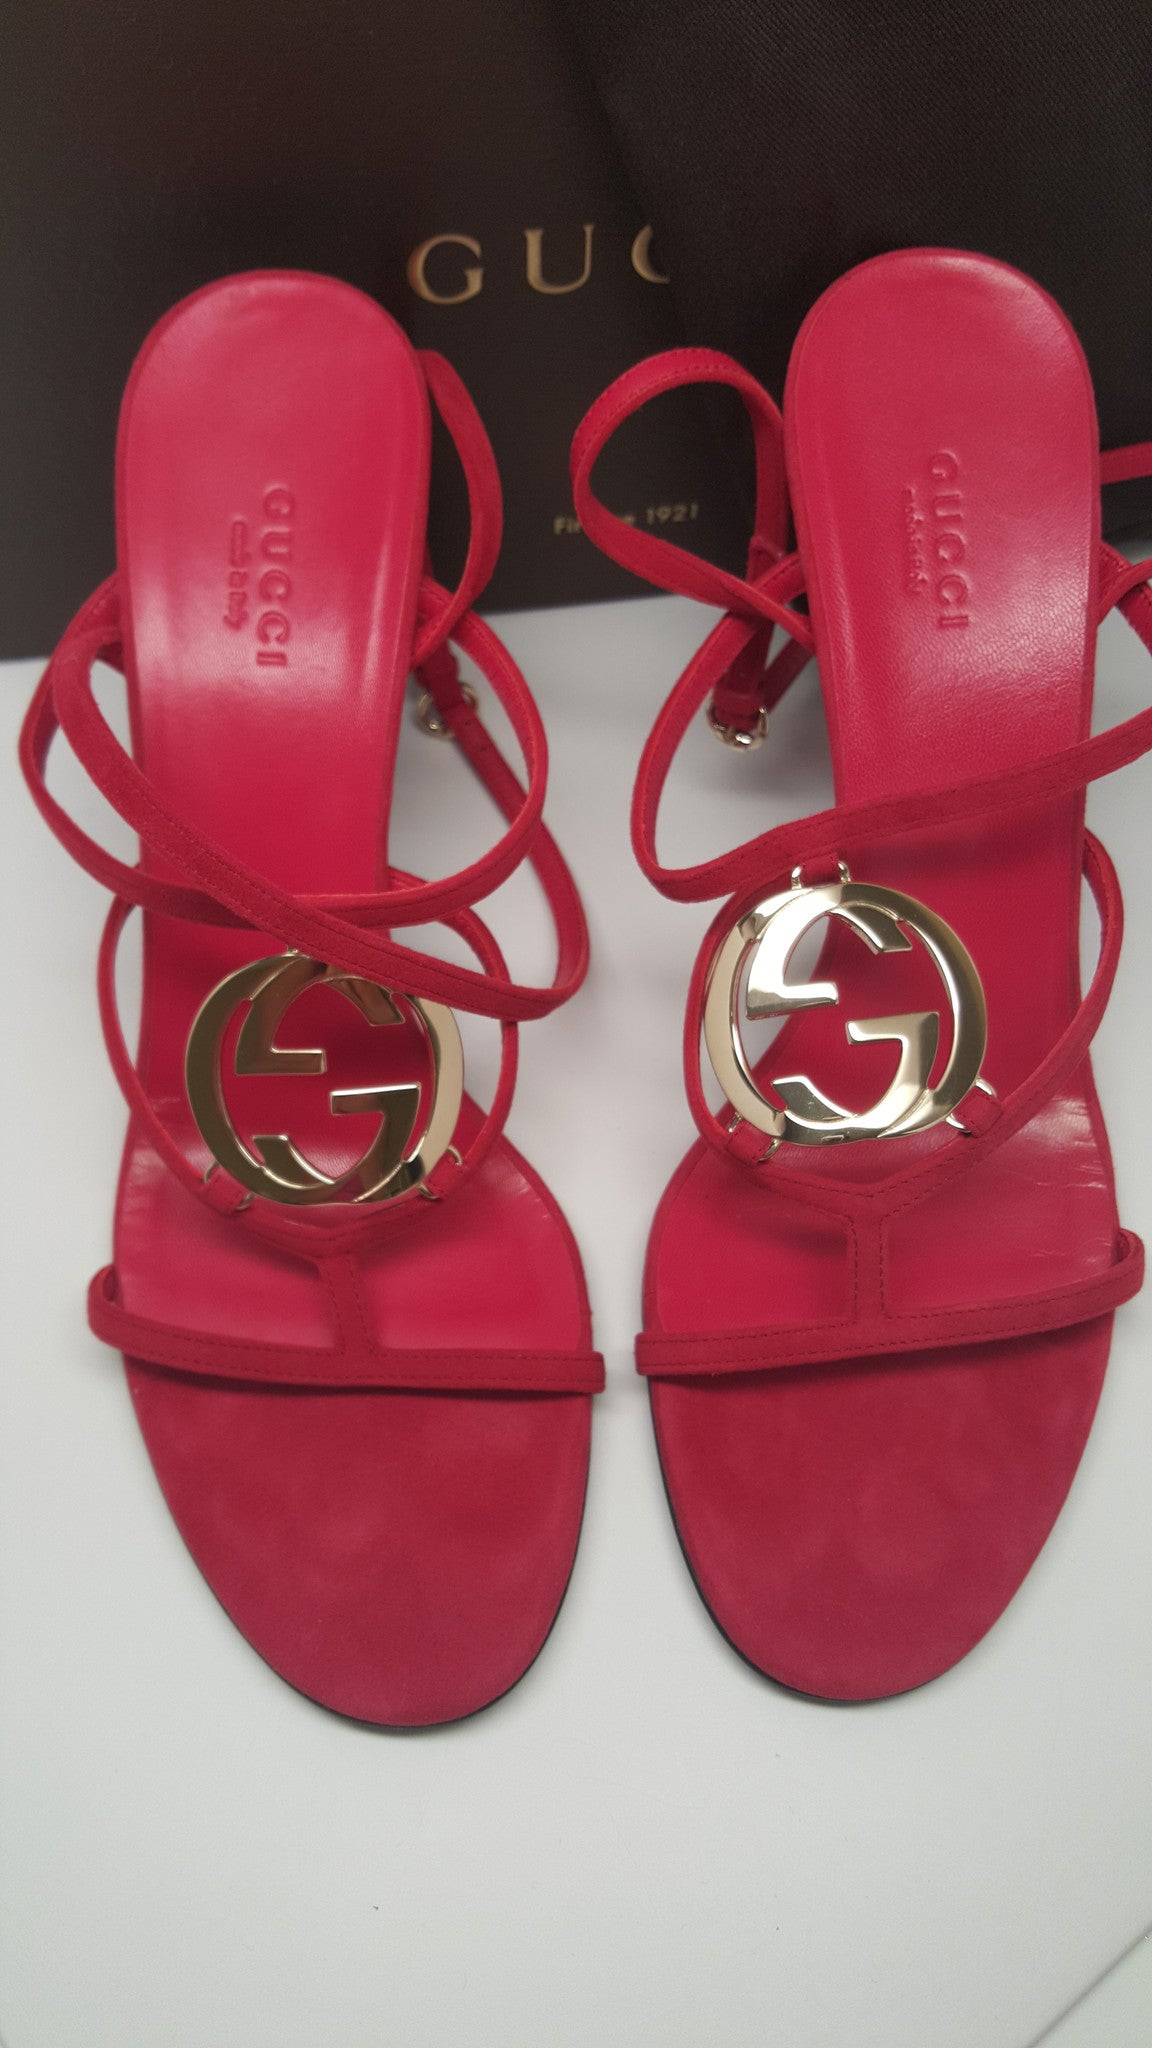 GUCCI GG LOGO HIGH HEELED SANDAL IN STRAWBERRY RED - SIZE 38.5